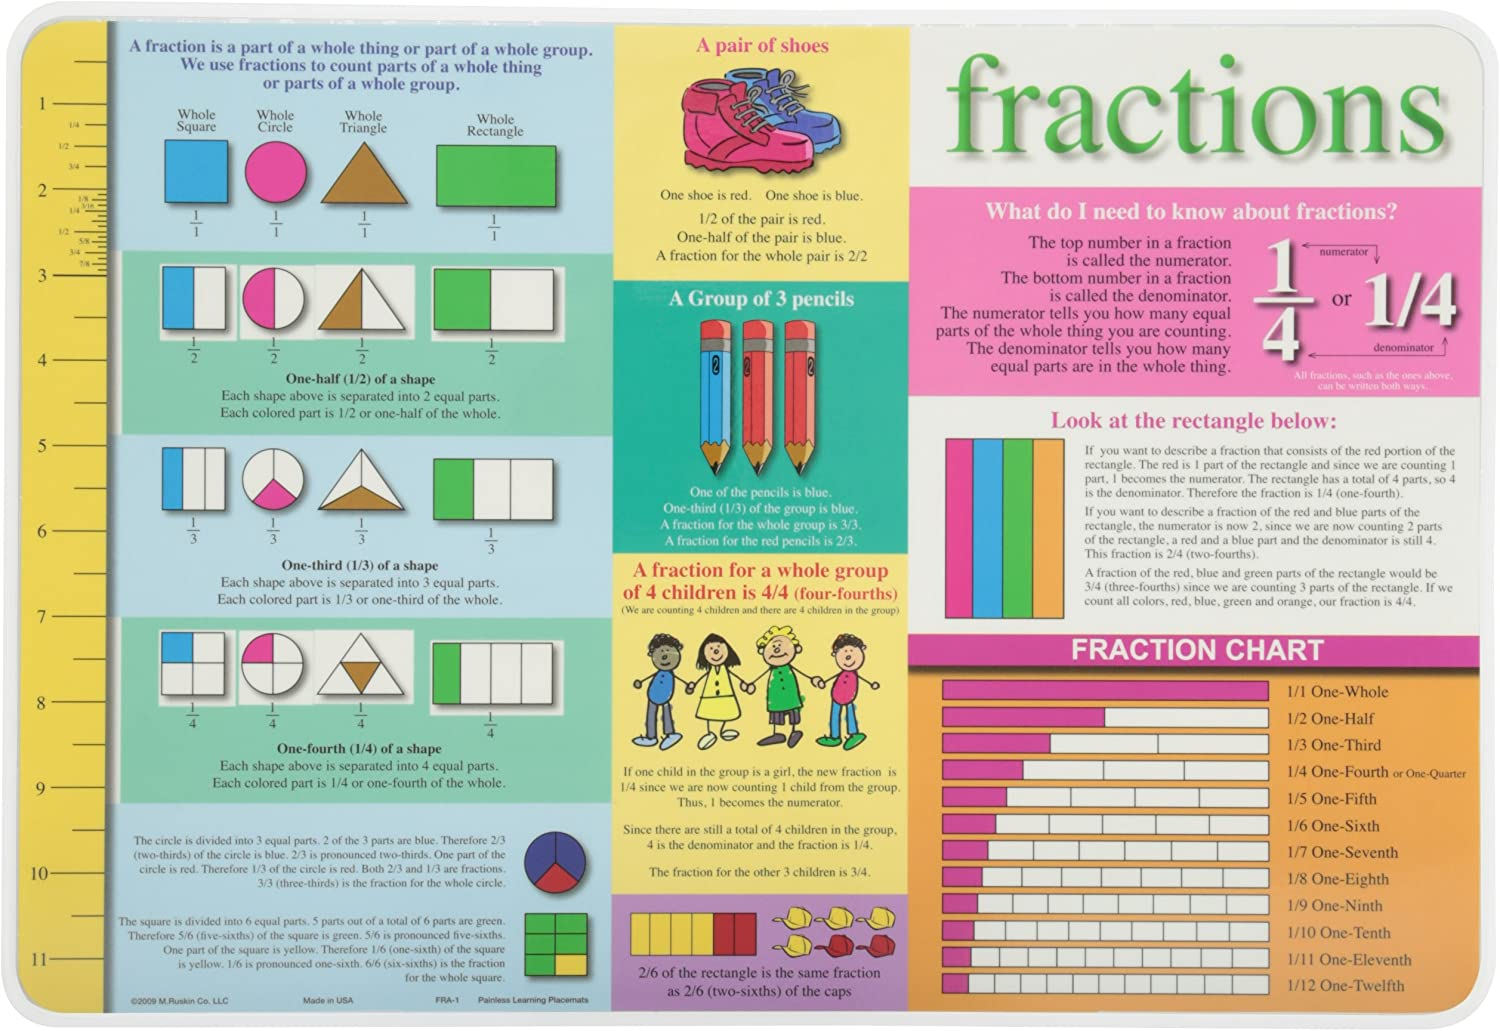 Painless Learning Fractions Placemat